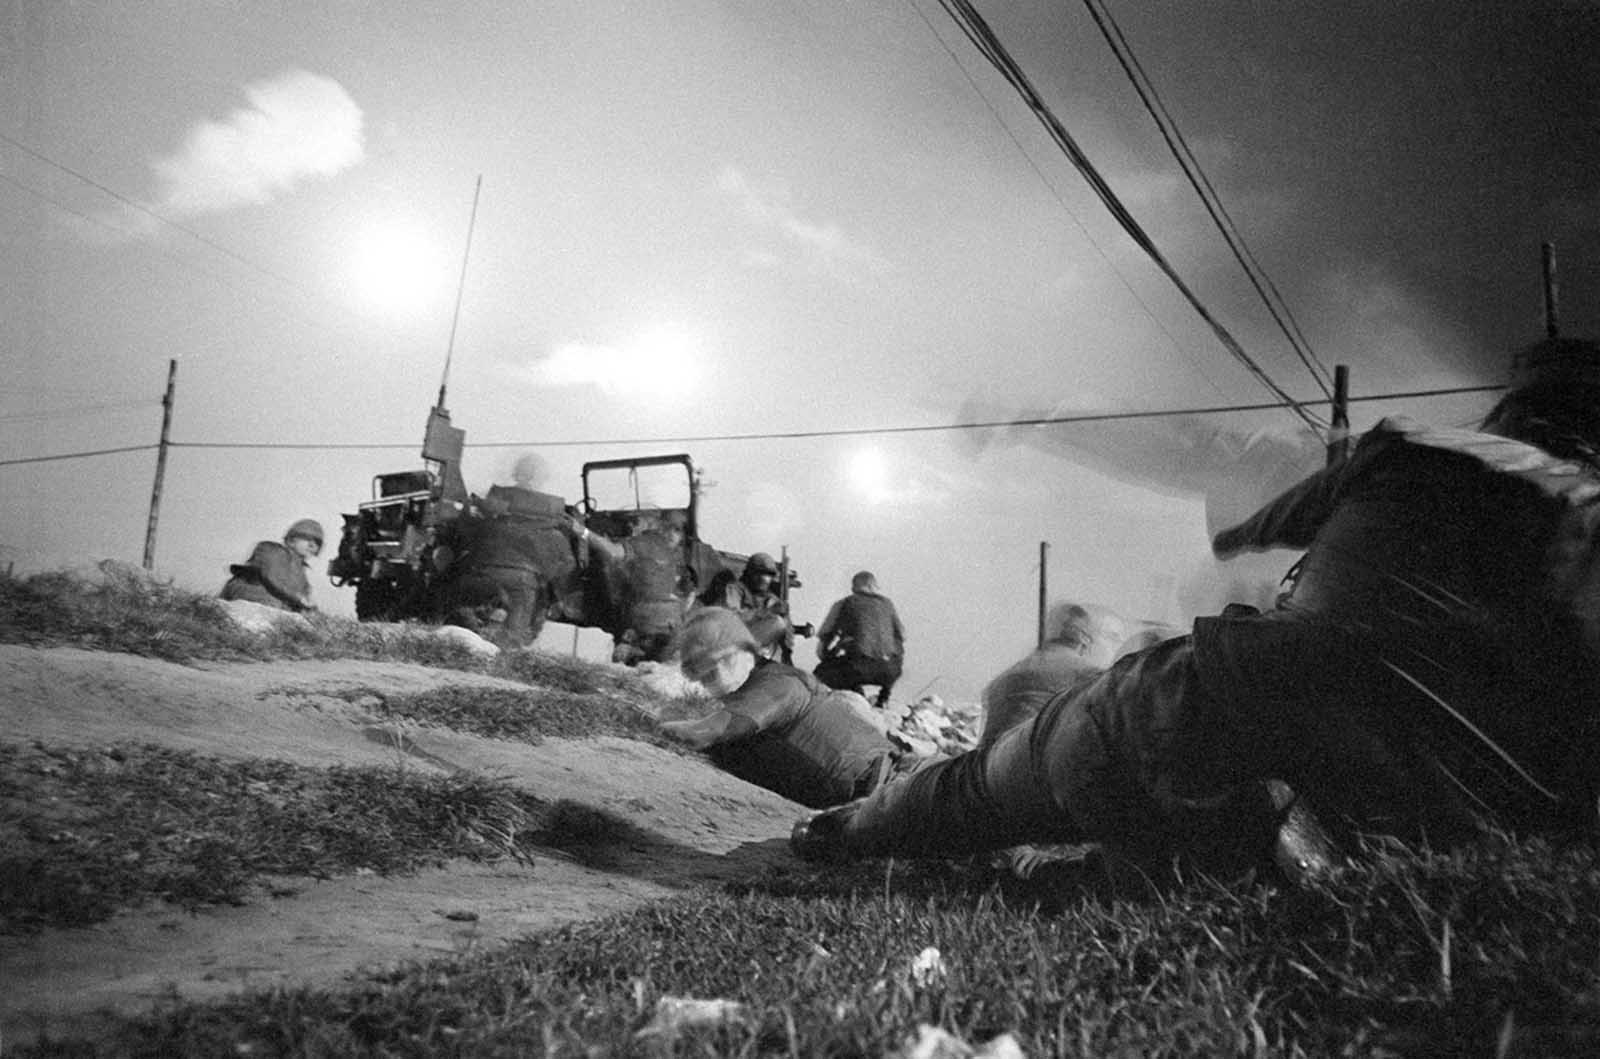 U.S. air policemen take cover and leave their jeep as they come under sniper fire near Da Nang Airbase in Vietnam on January 30, 1968, after it was hit by a rocket barrage. Flares light up the Da Nang area to make it easier to spot infiltrating guerrillas.